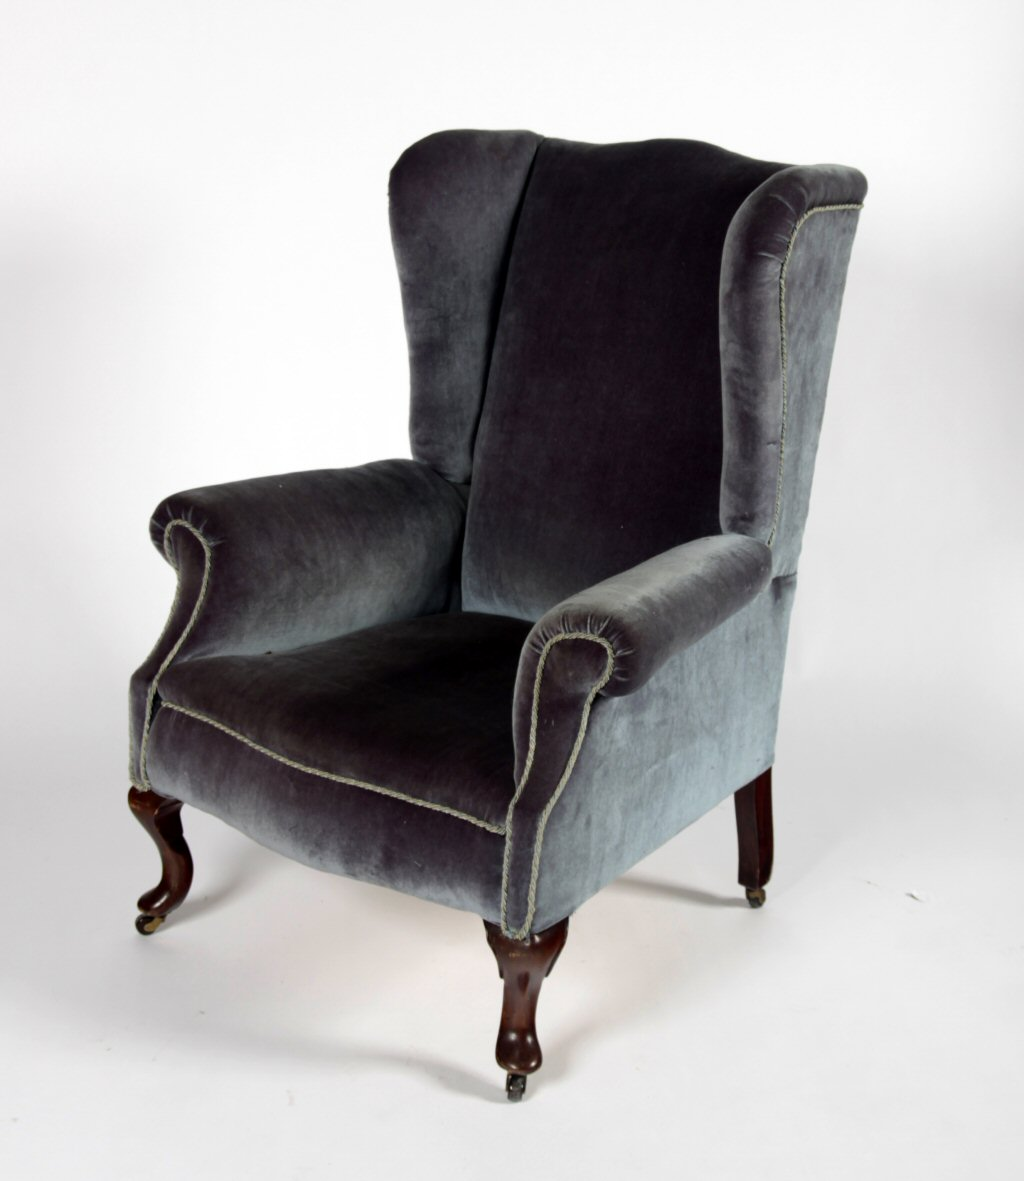 Lot 336 A Queen Anne Style Wingback Armchair